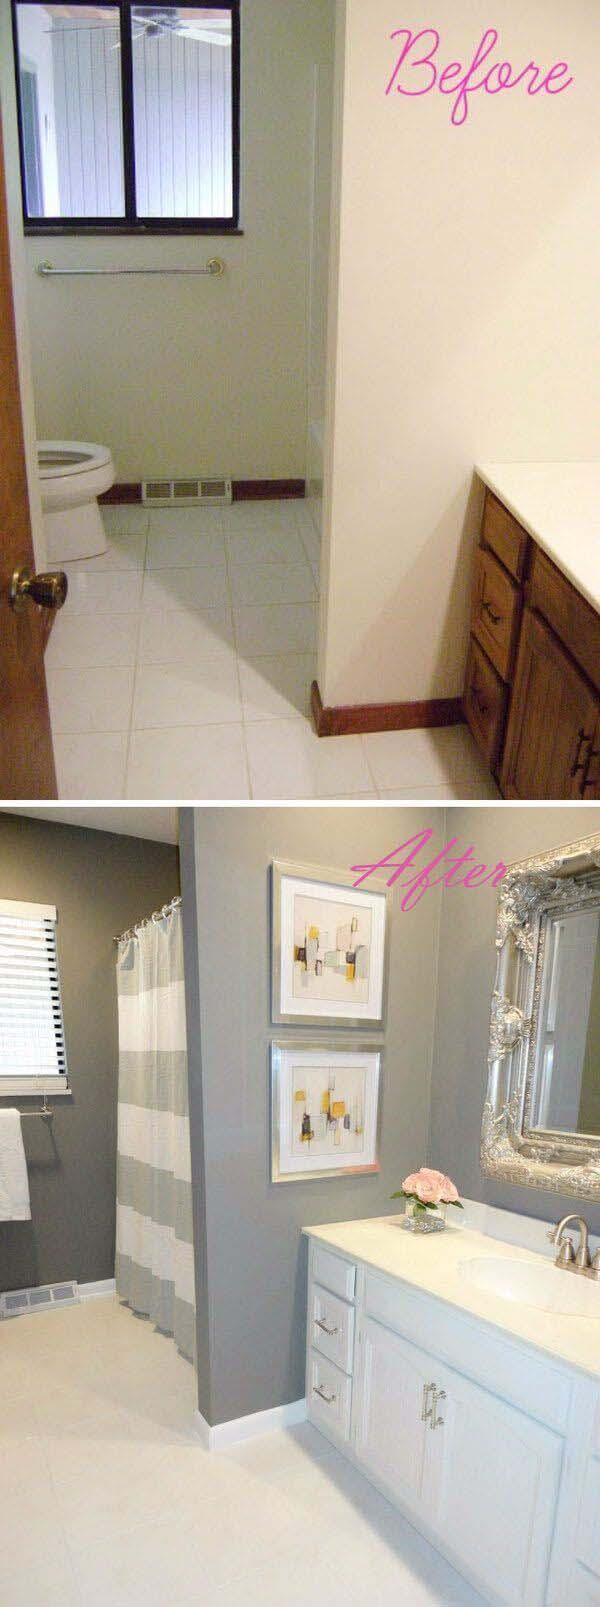 Paint and Art Can Update Your Look #bathroom #makeover #decorhomeideas